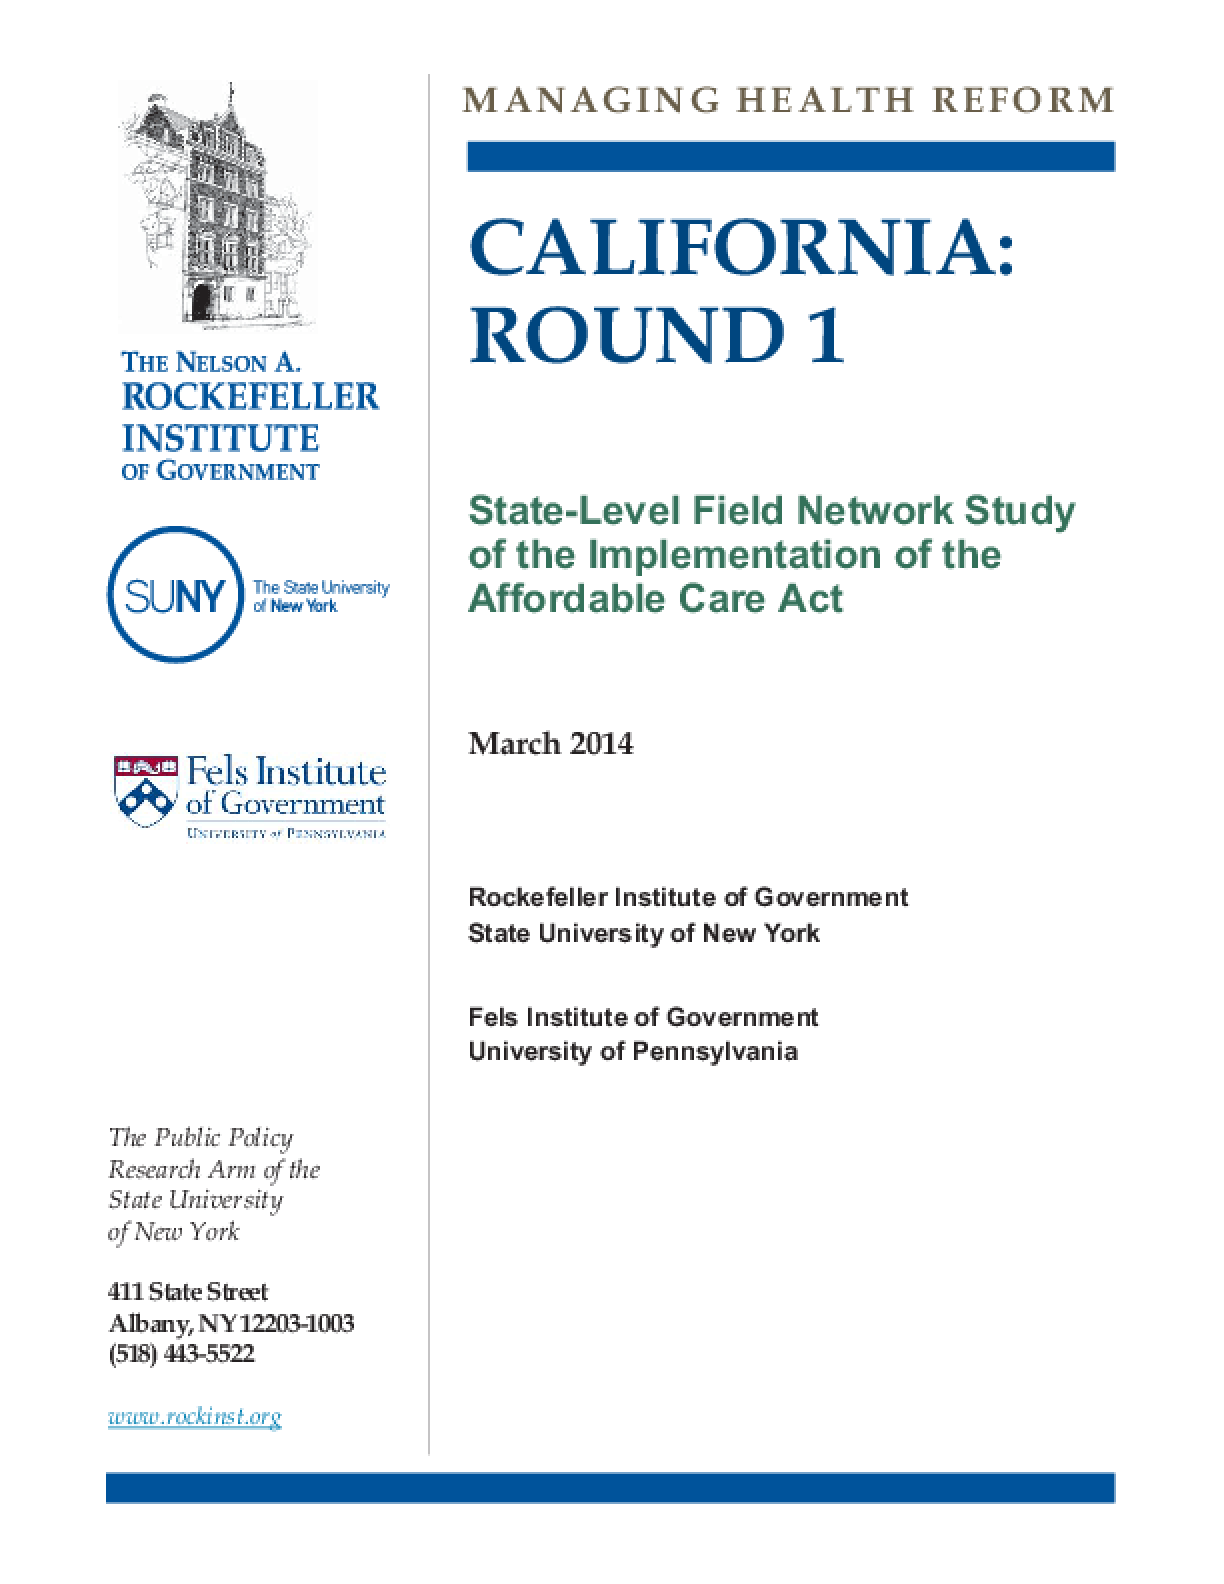 California: Round 1 - State-Level Field Network Study of the Implementation of the Affordable Care Act